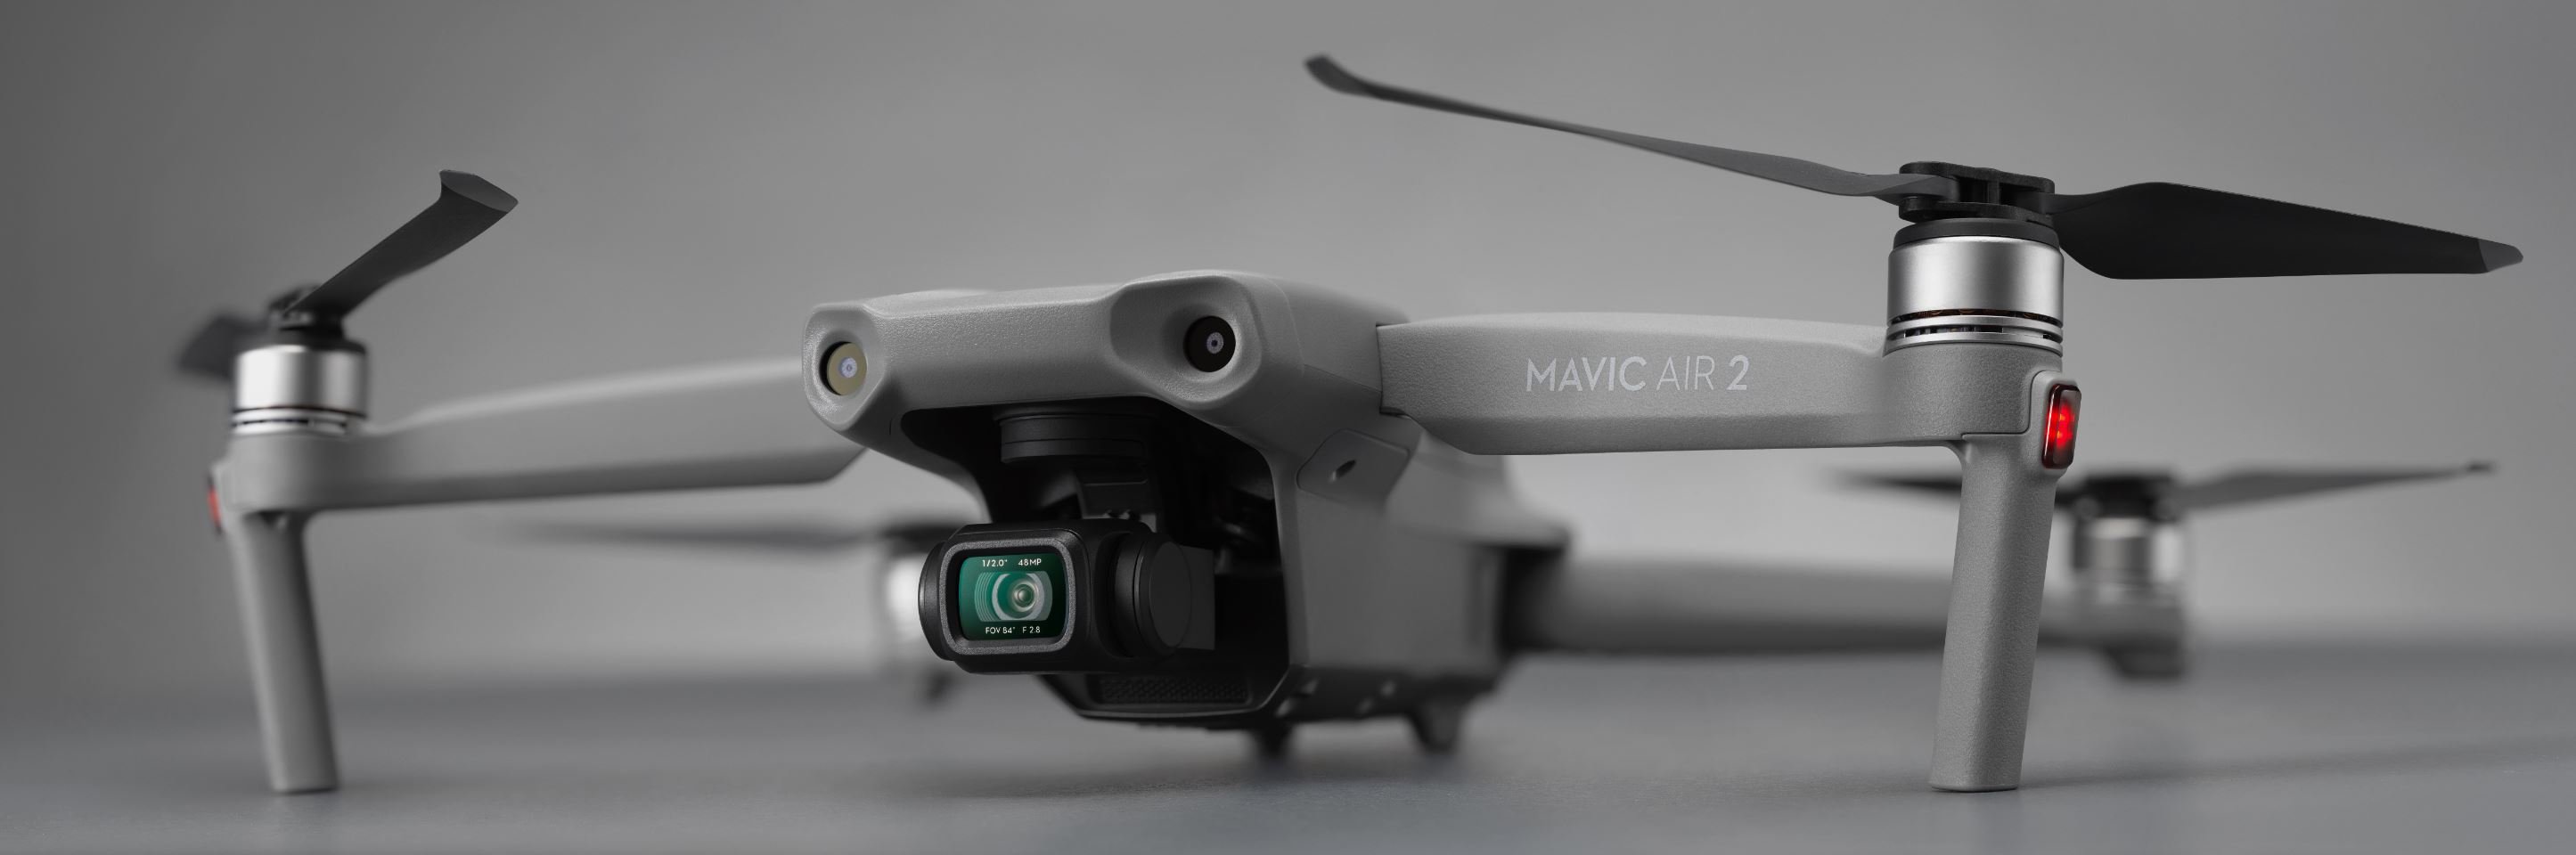 DJI Mavic Air 2 DJI Taking Pre Orders For Its New Mavic Air 2 Drone